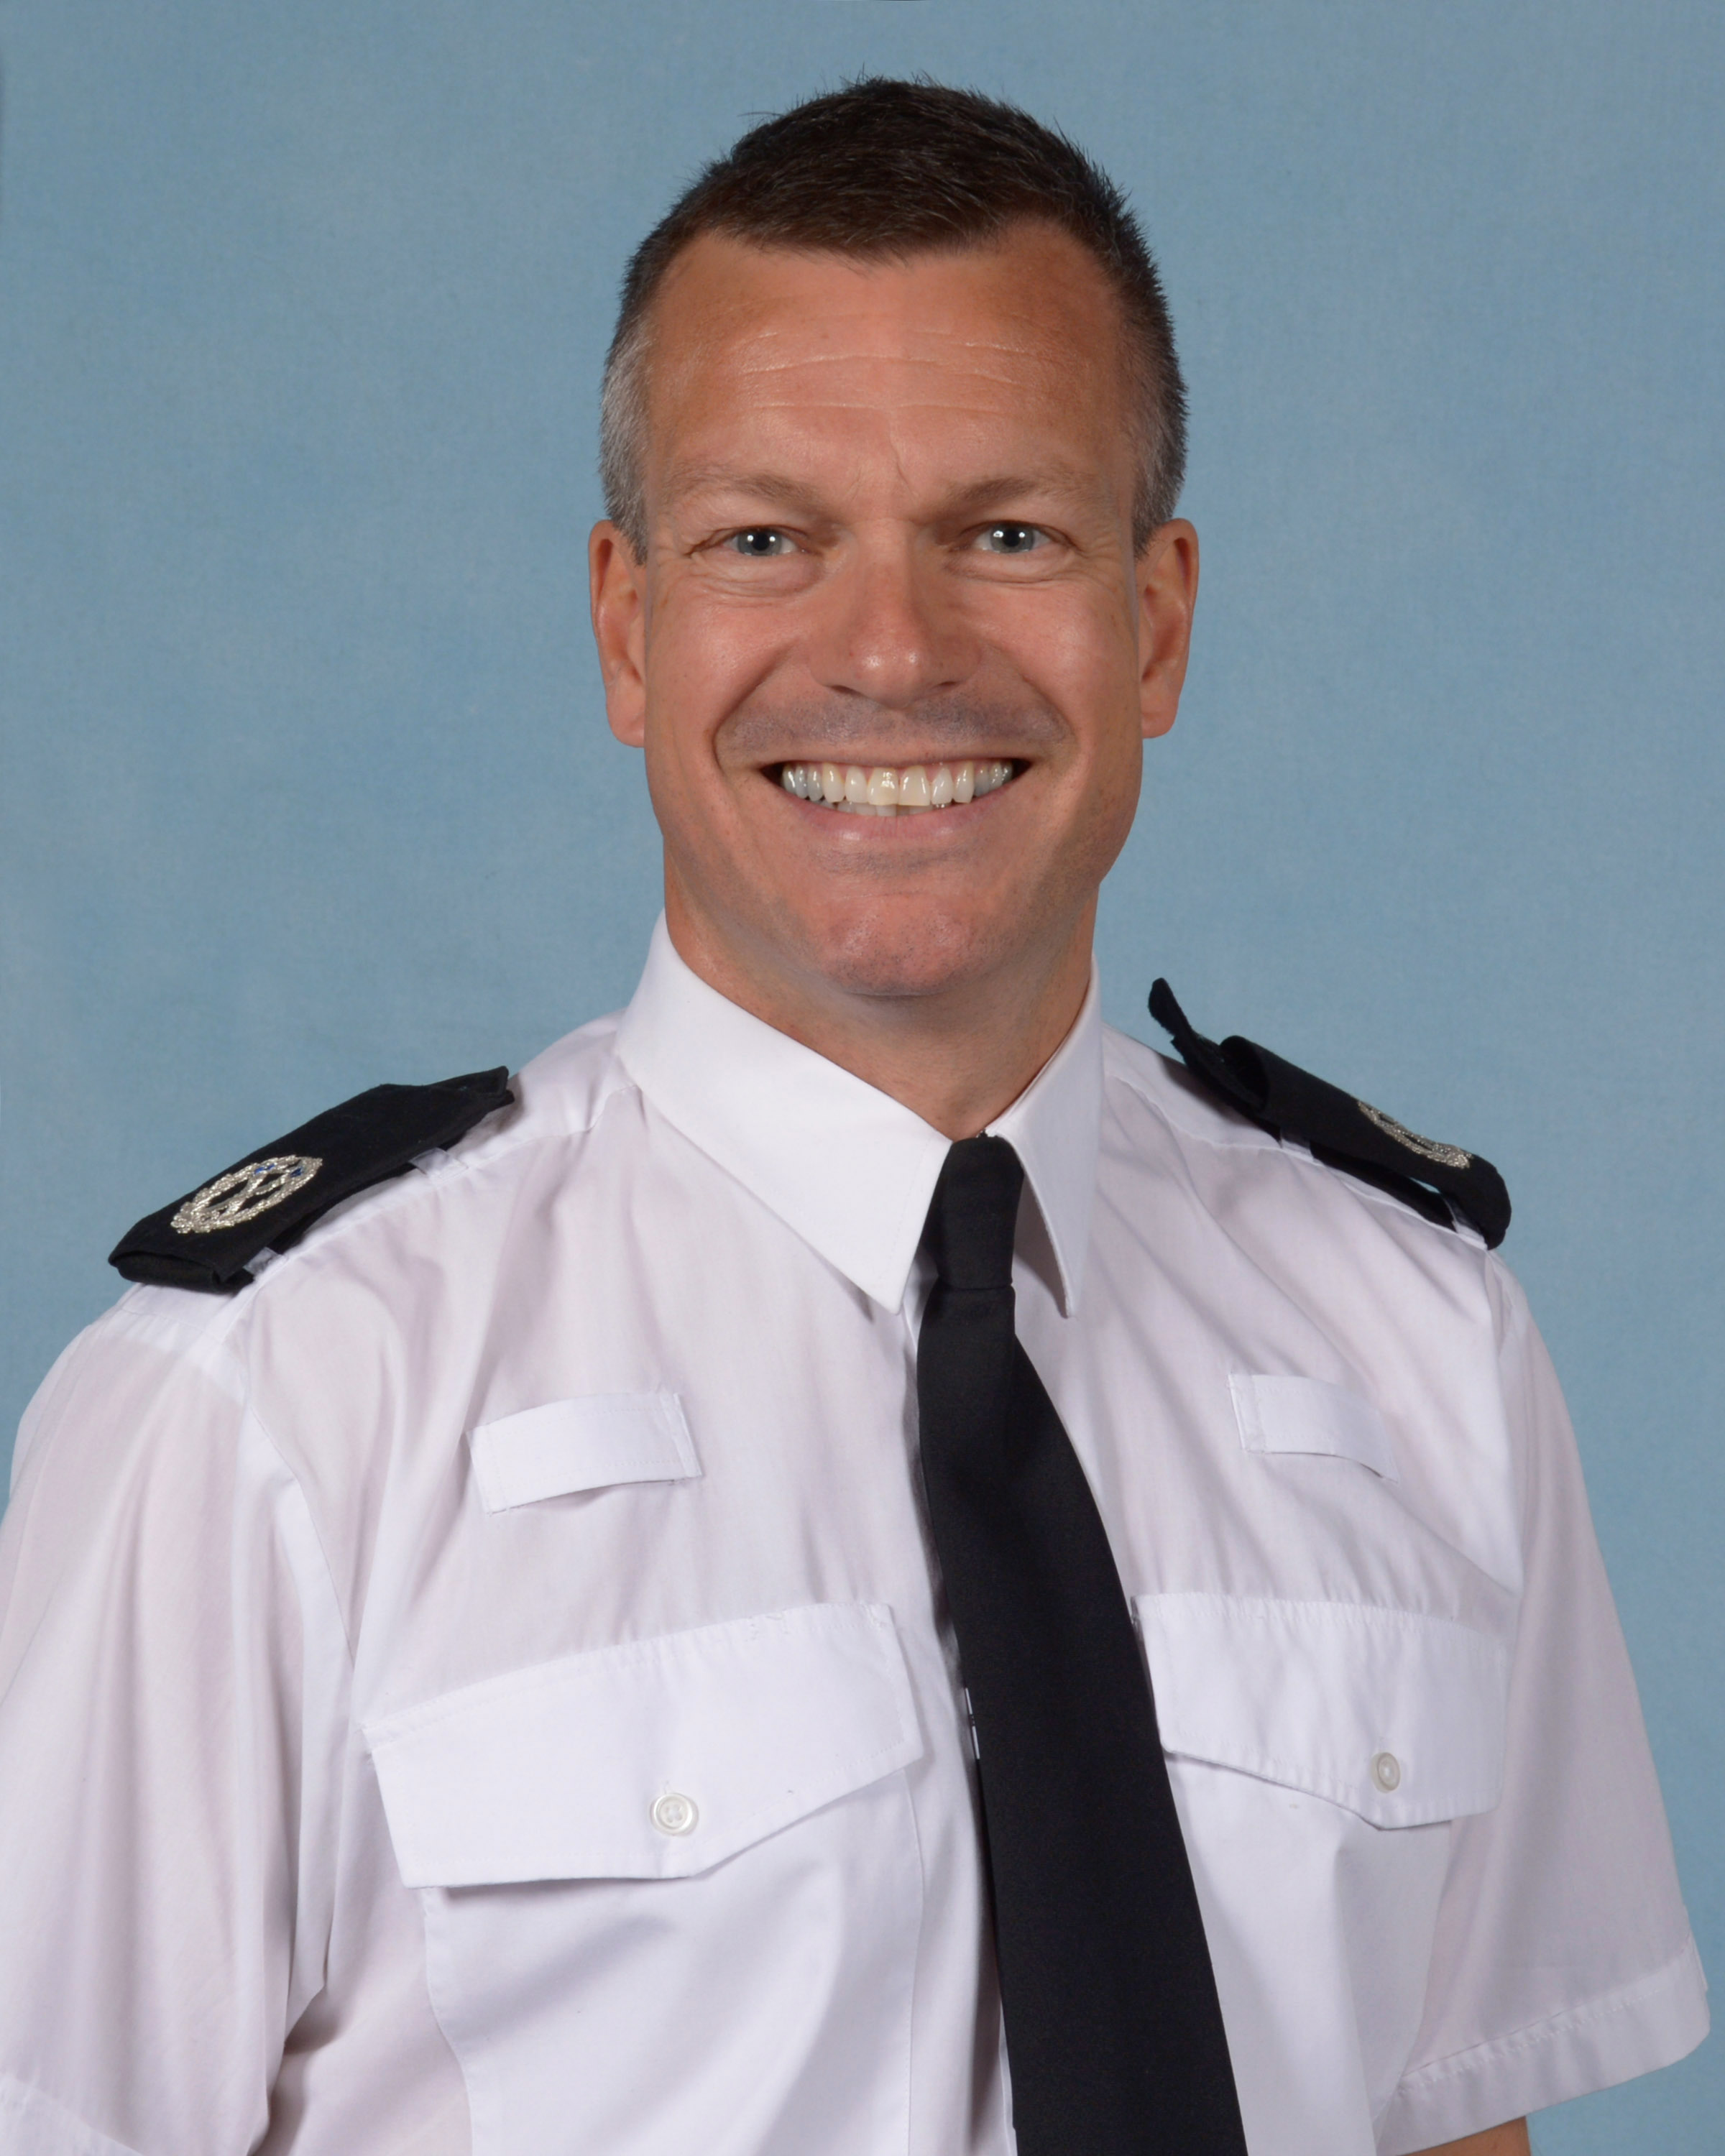 """Assistant Chief Constable Mark Williams of Police Scotland says control room staff are the """"non-visible frontline"""" of the emergency services."""